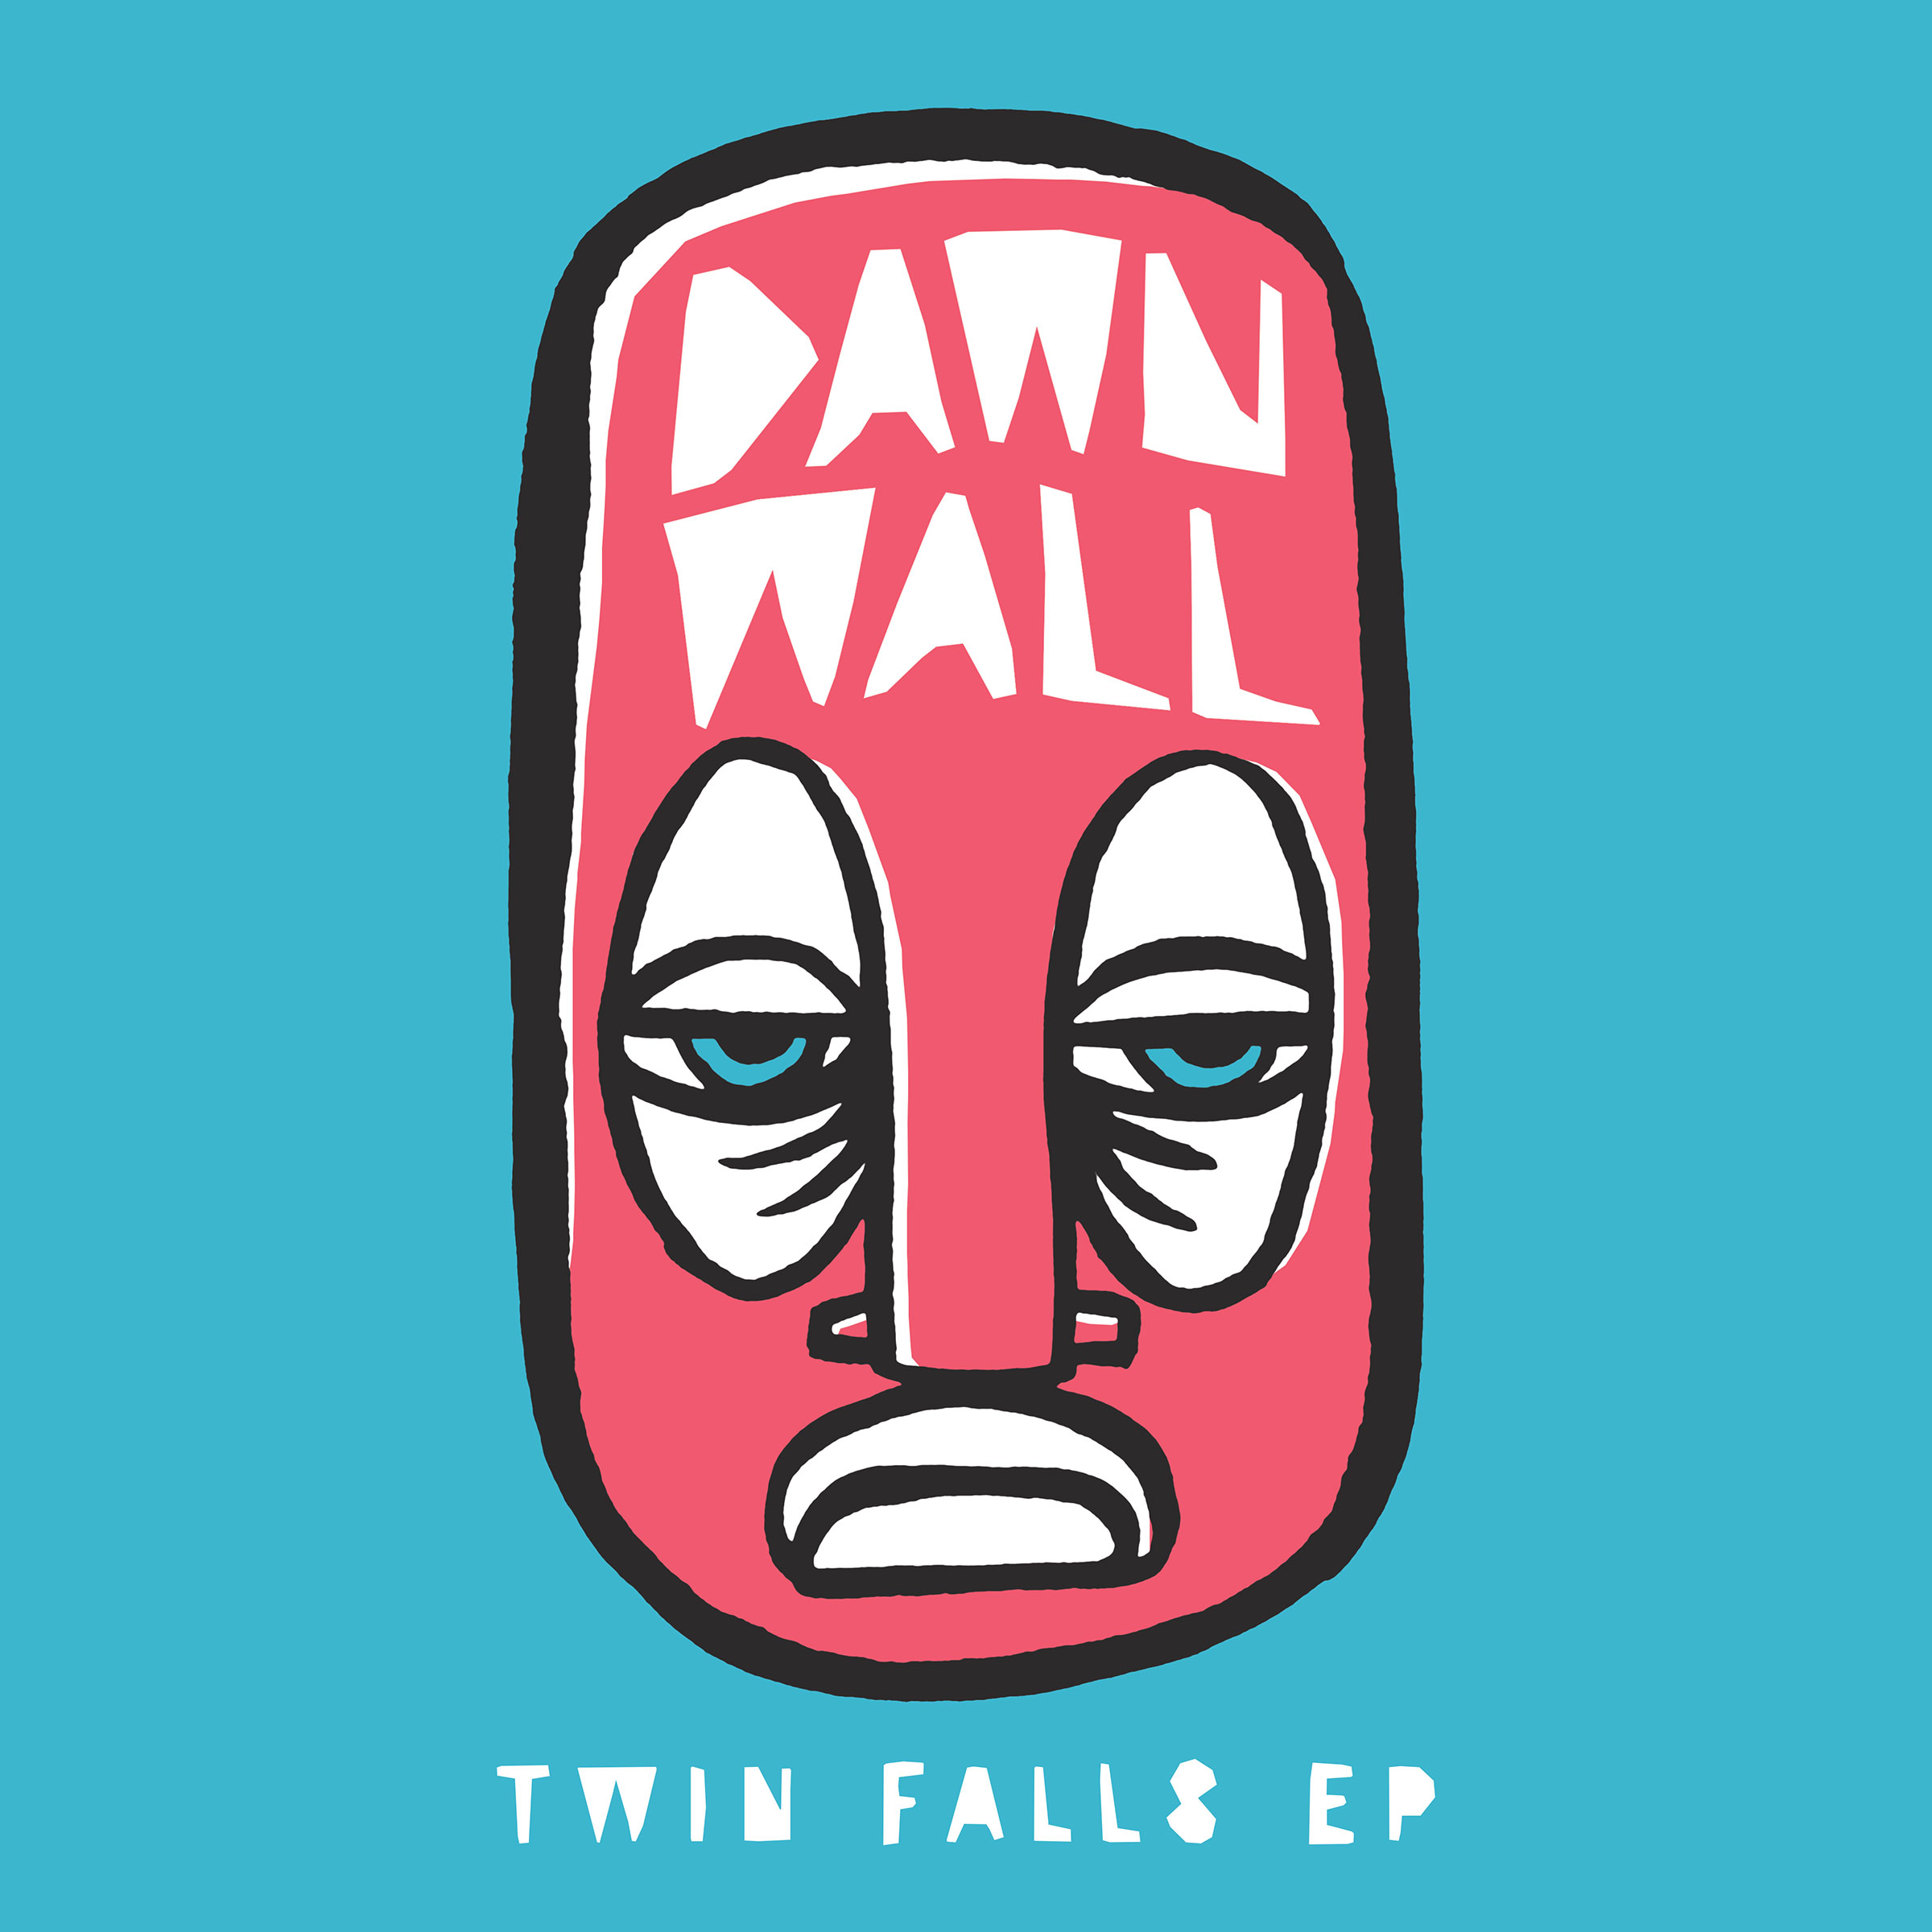 DIS037 - Dawn Wall - Twin Falls EP